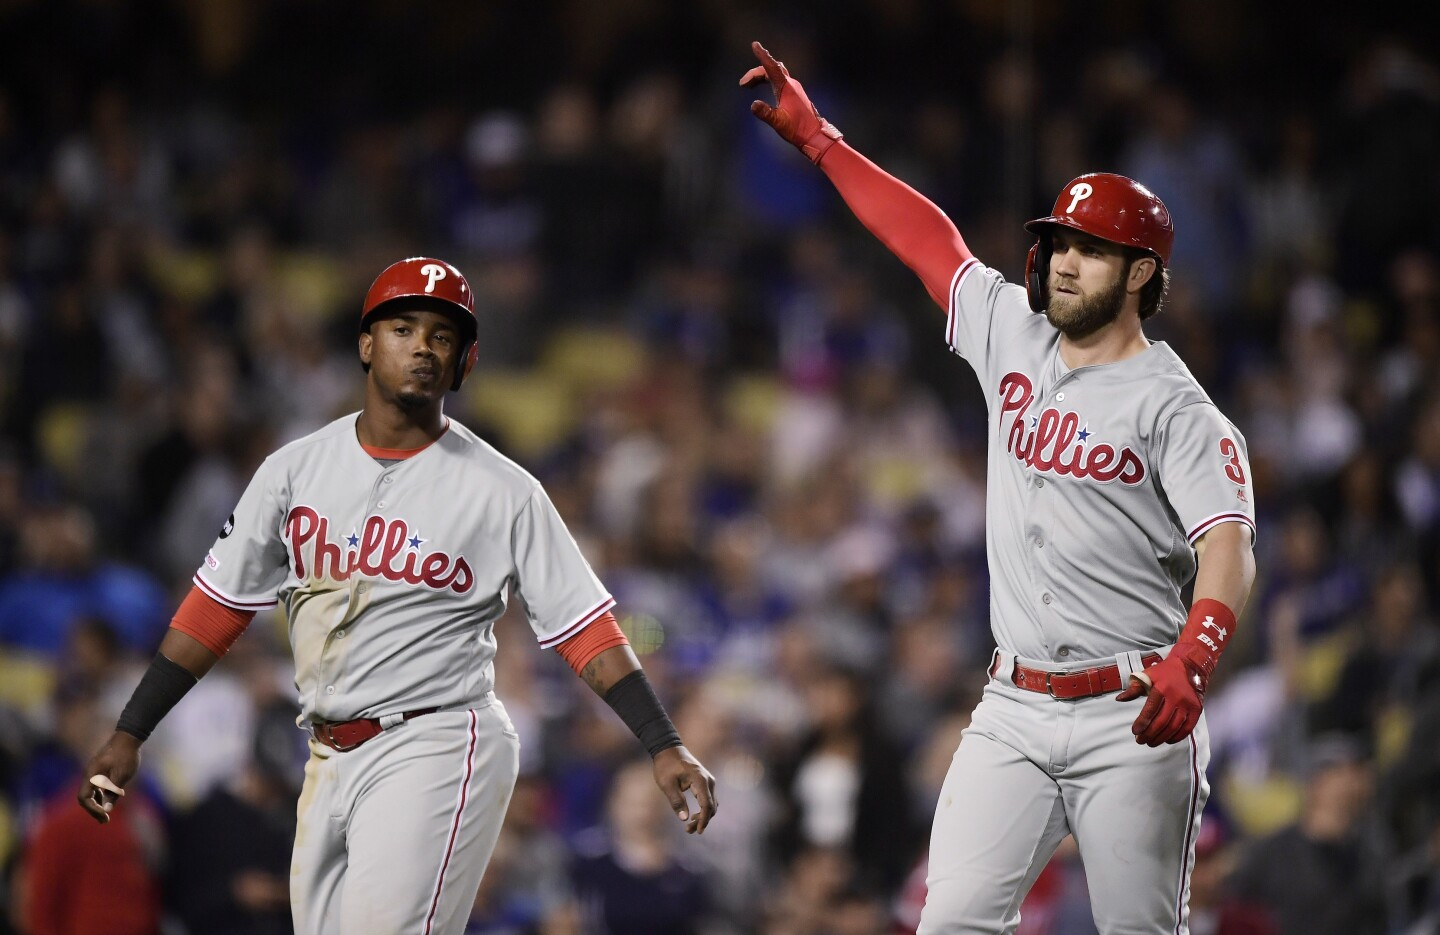 Philadelphia Phillies' Bryce Harper, right, gestures after hitting a two-run home run, next to Jean Segura, during the seventh inning of the team's baseball game against the Los Angeles Dodgers on Saturday, June 1, 2019, in Los Angeles. (AP Photo/Mark J. Terrill)